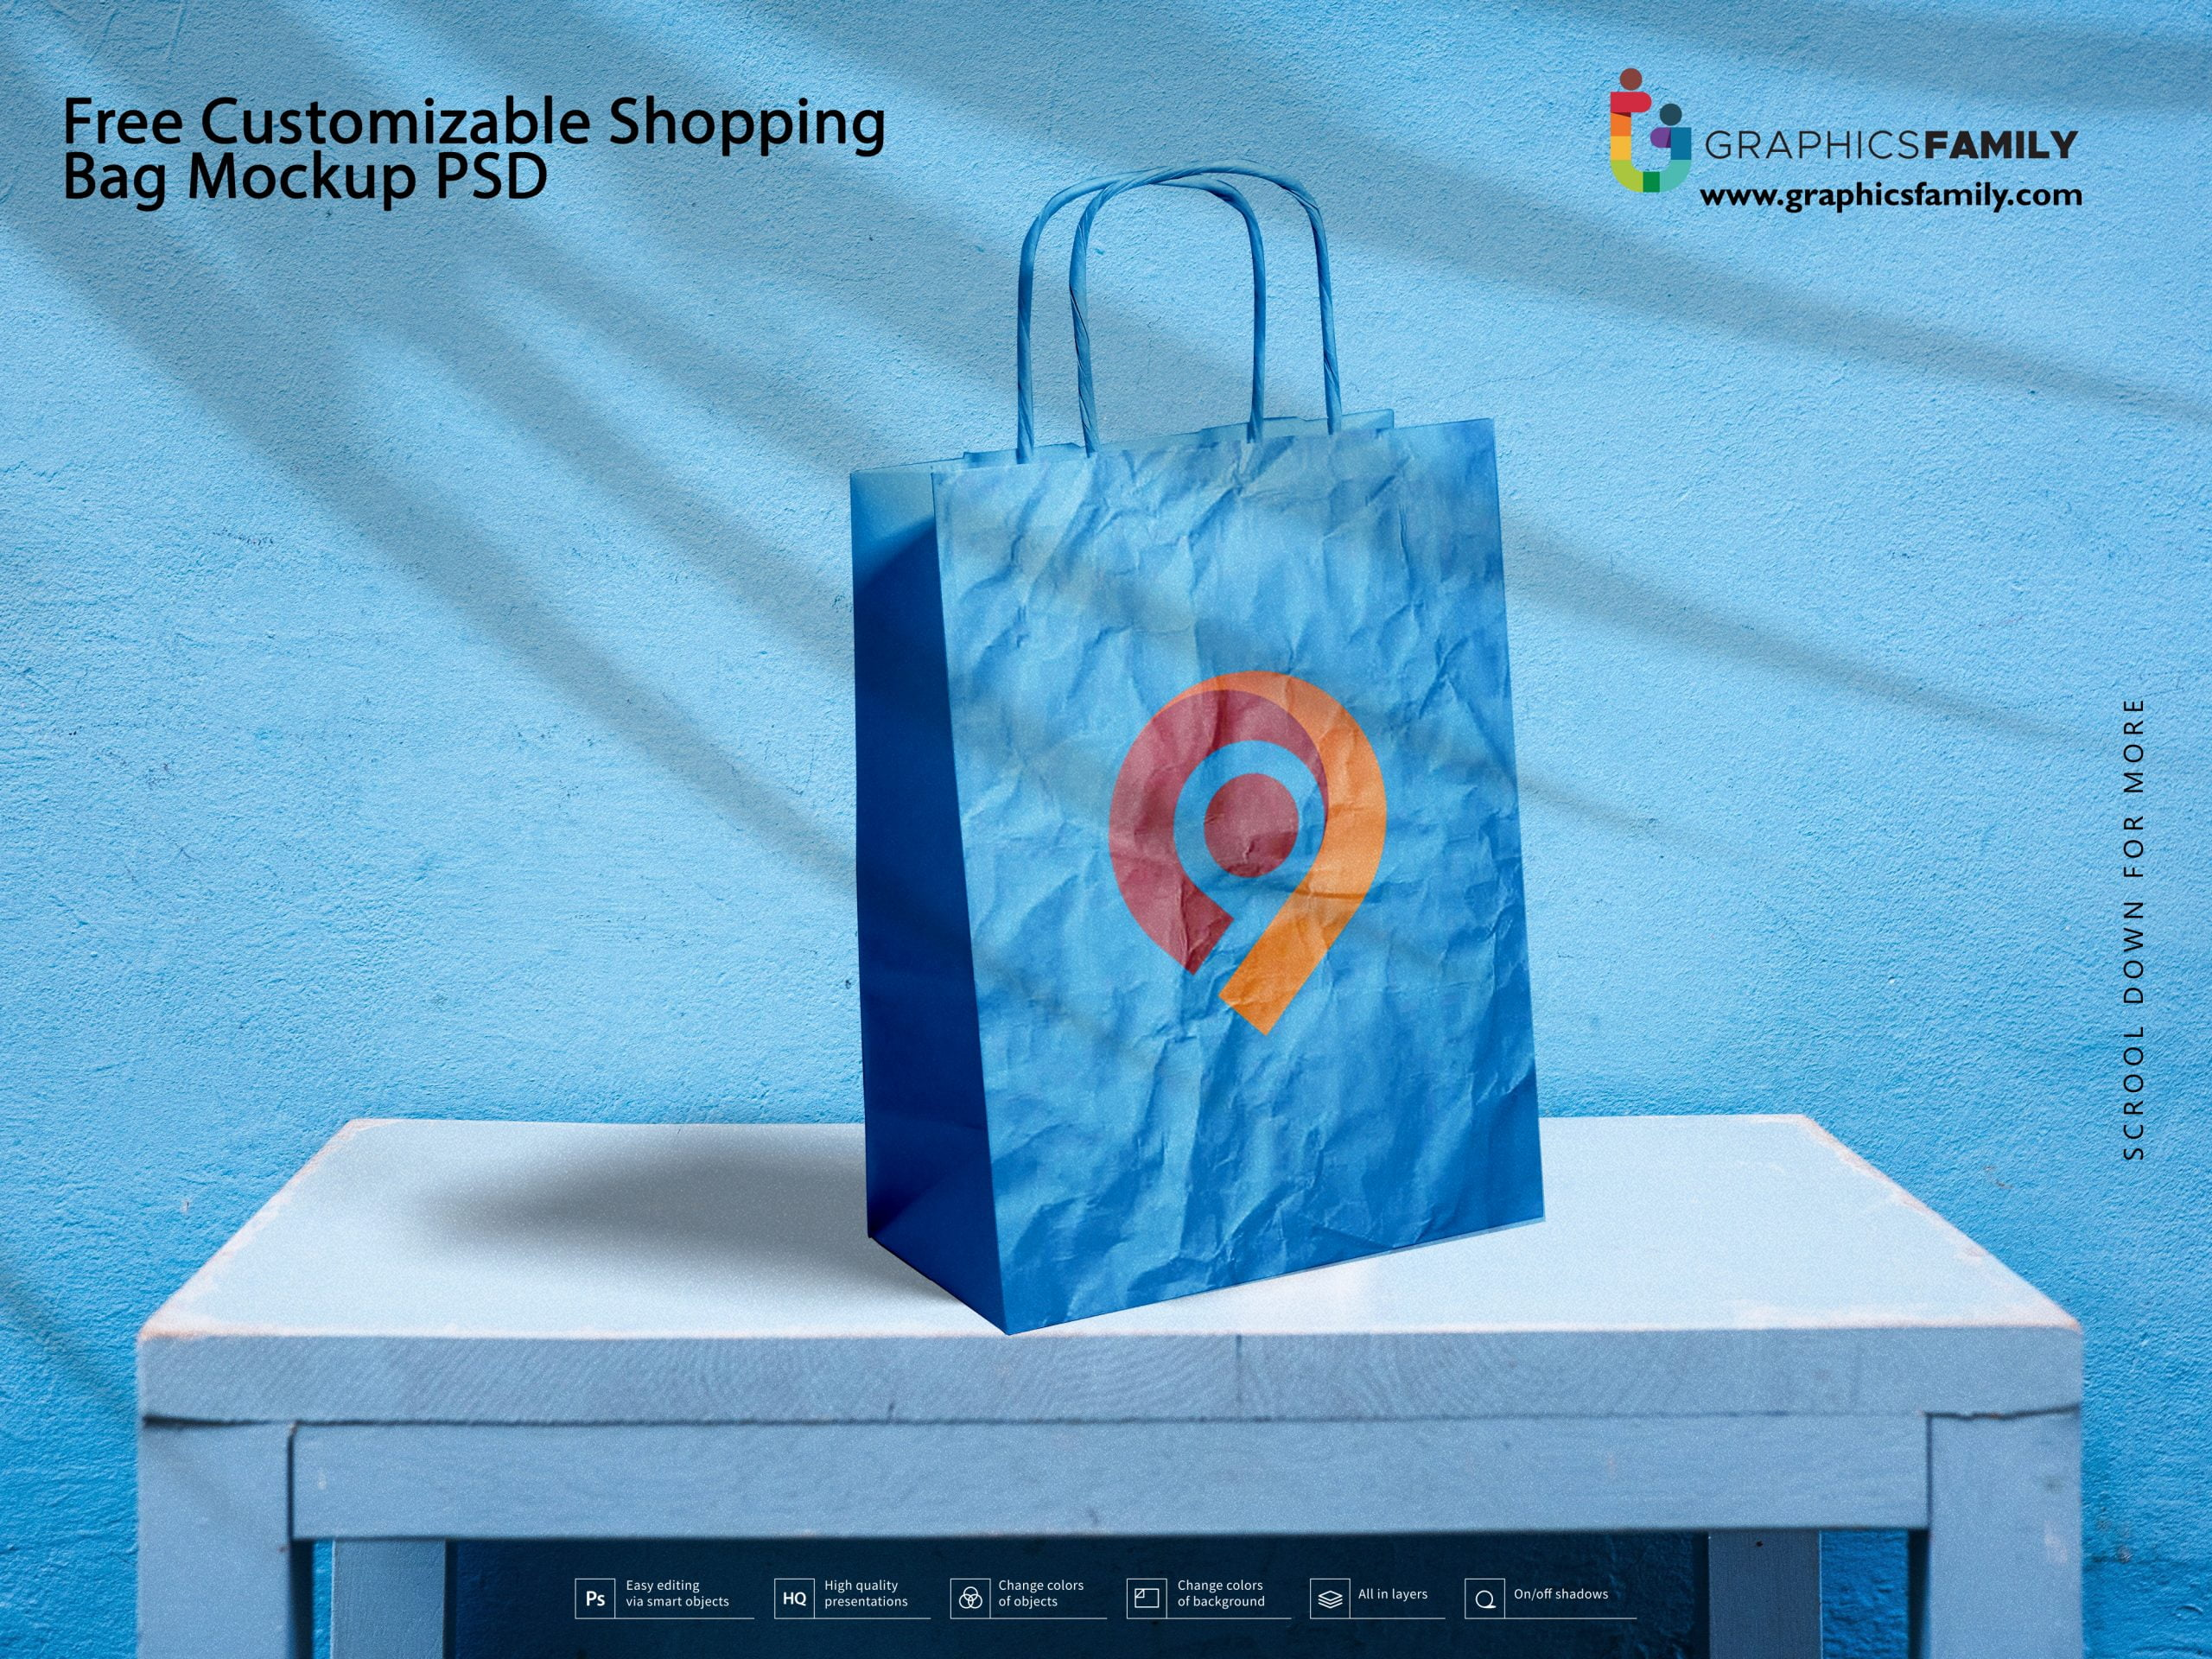 Free Customizable Shopping Bag Mockup PSD Download